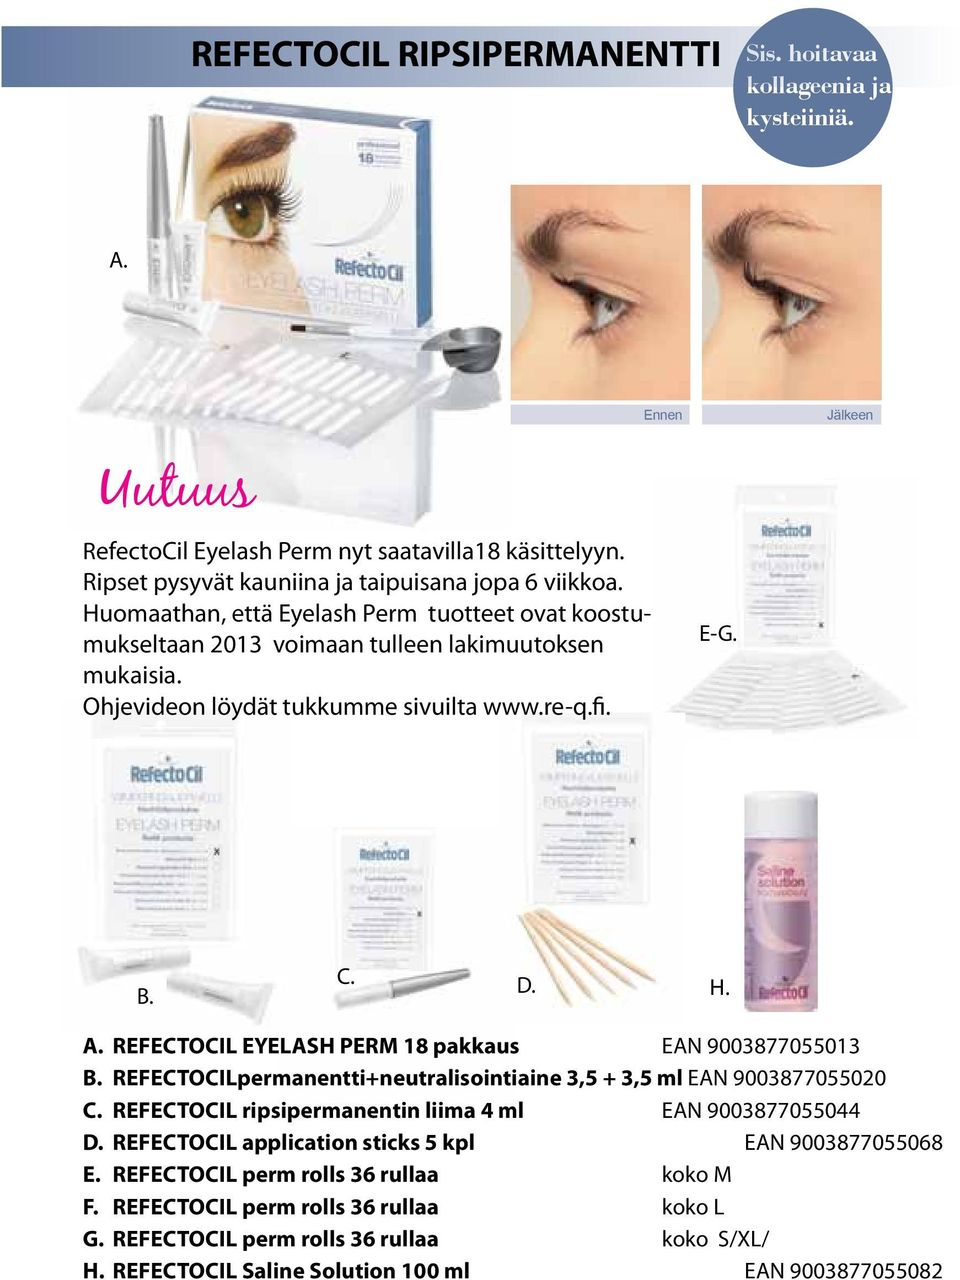 REFECTOCIL EYELASH PERM 18 pakkaus EAN 9003877055013 B. REFECTOCILpermanentti+neutralisointiaine 3,5 + 3,5 ml EAN 9003877055020 C. REFECTOCIL ripsipermanentin liima 4 ml EAN 9003877055044 D.